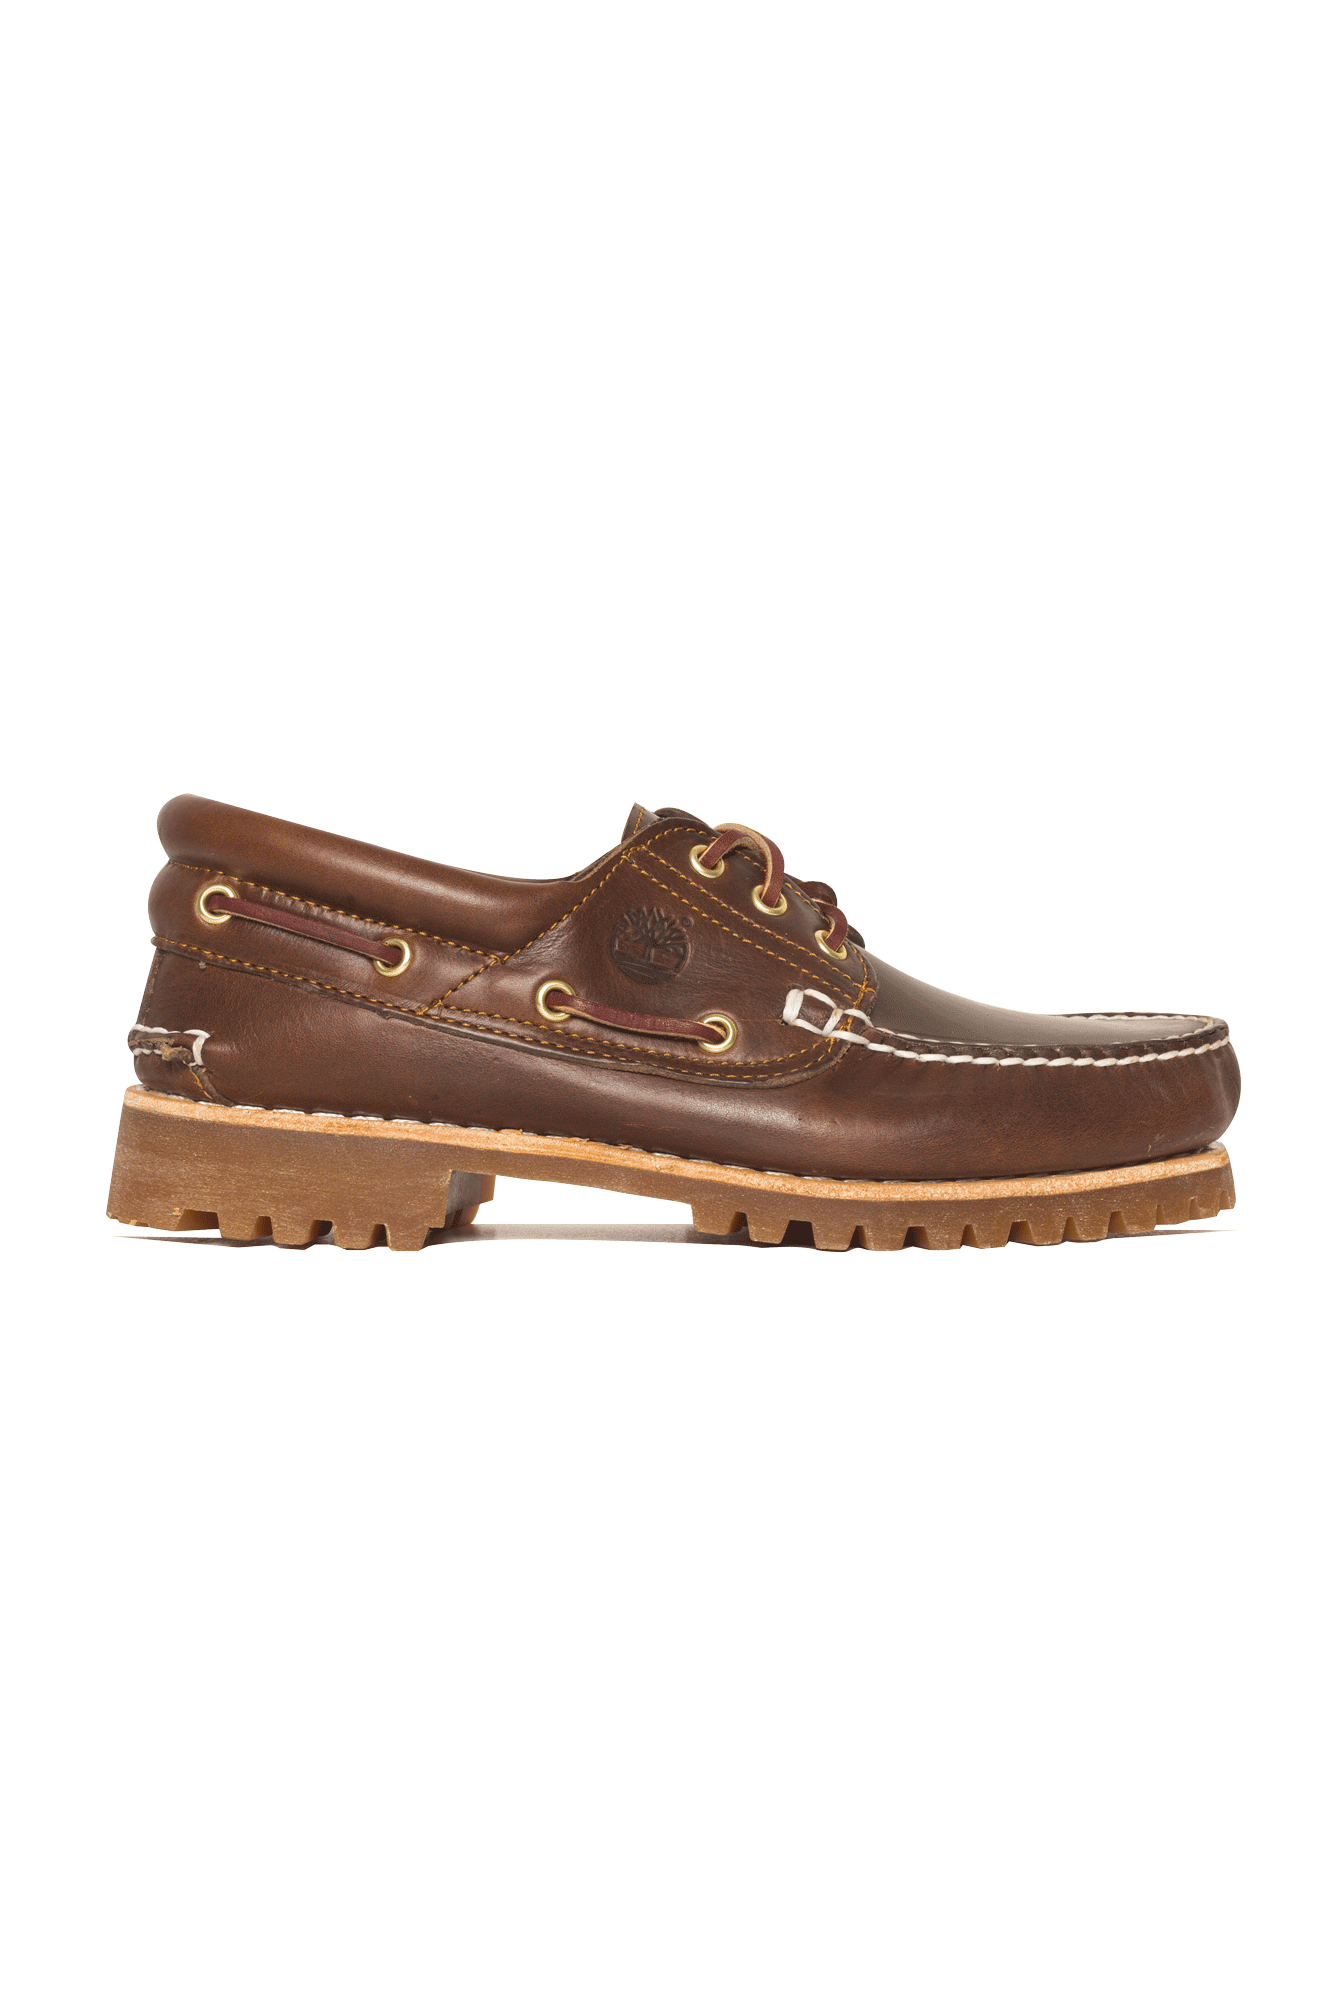 Timberland Scarpe da montagna Authentics 3 Eye Classic Marrone 30003#000#C0003#6 - One Block Down